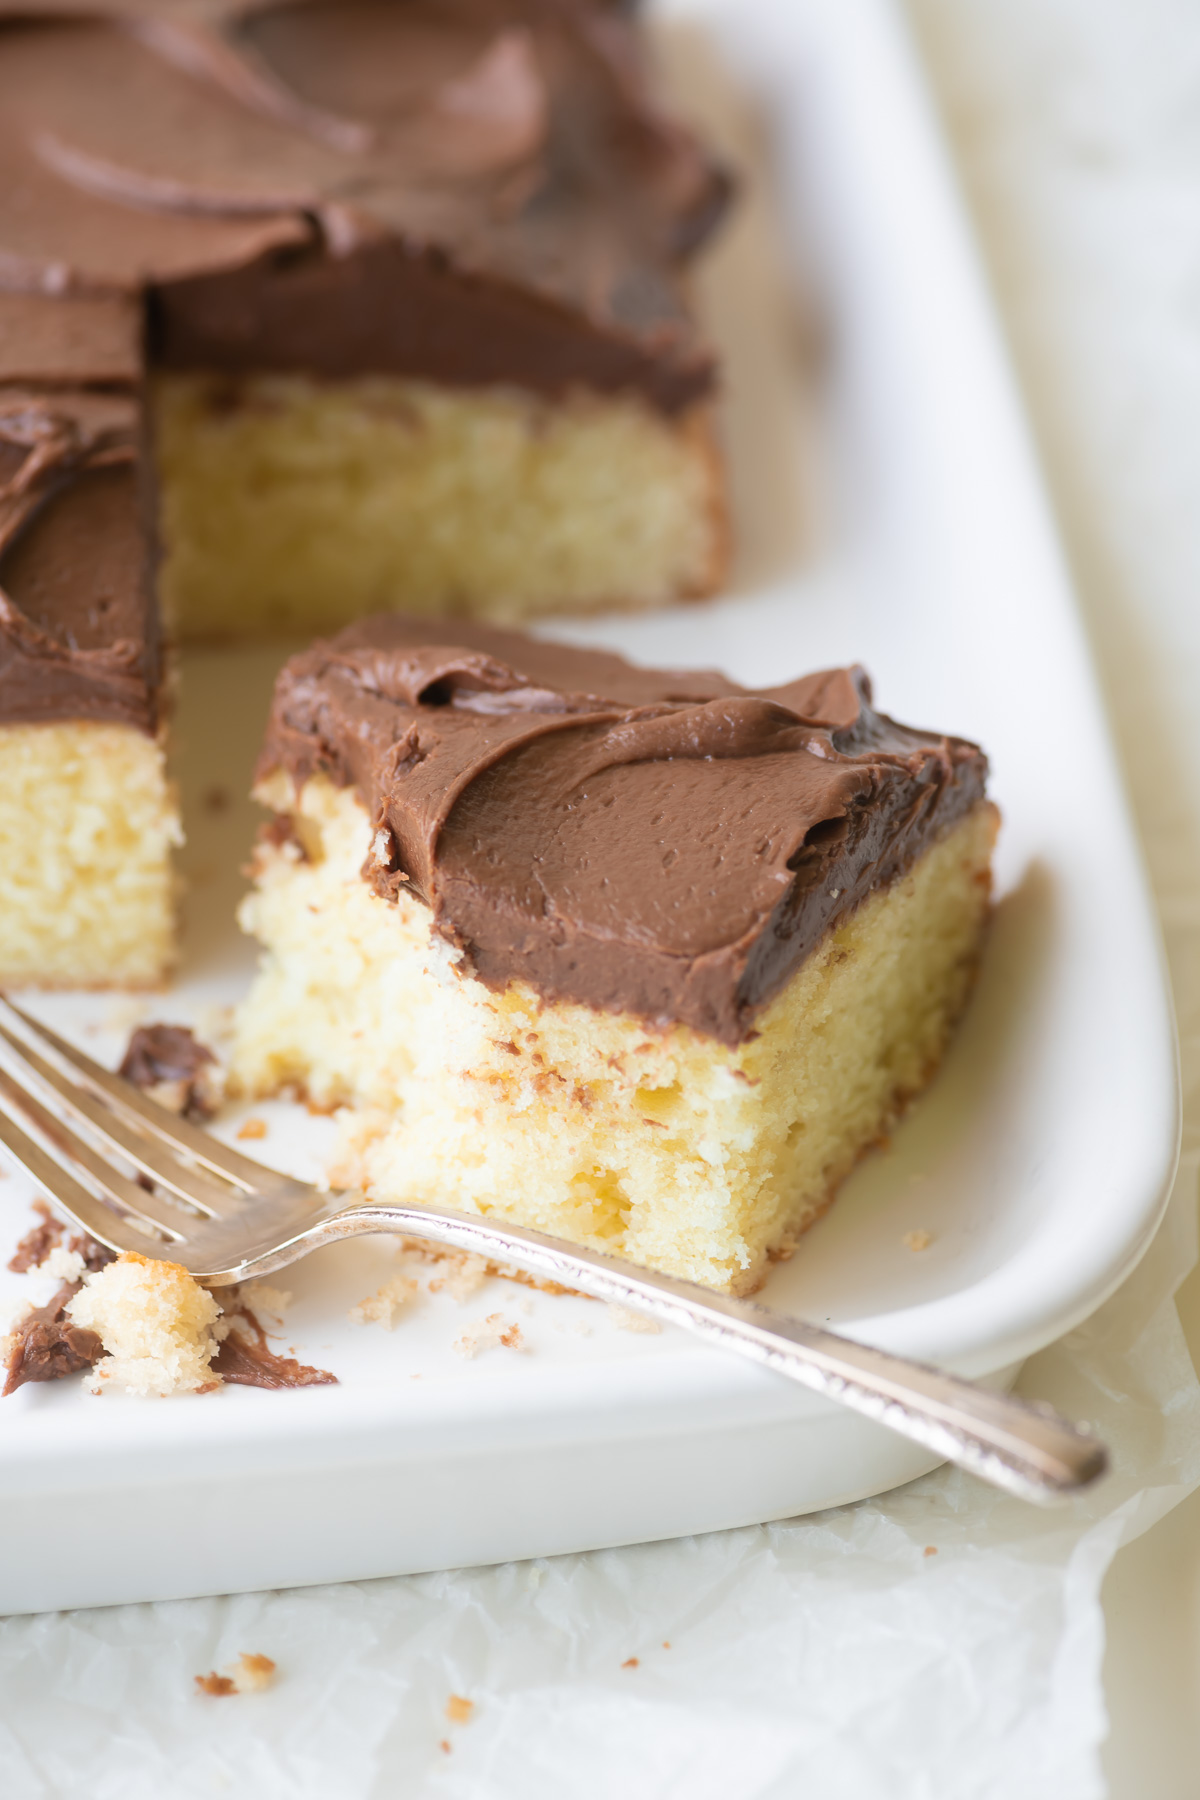 a piece of yellow cake with chocolate frosting